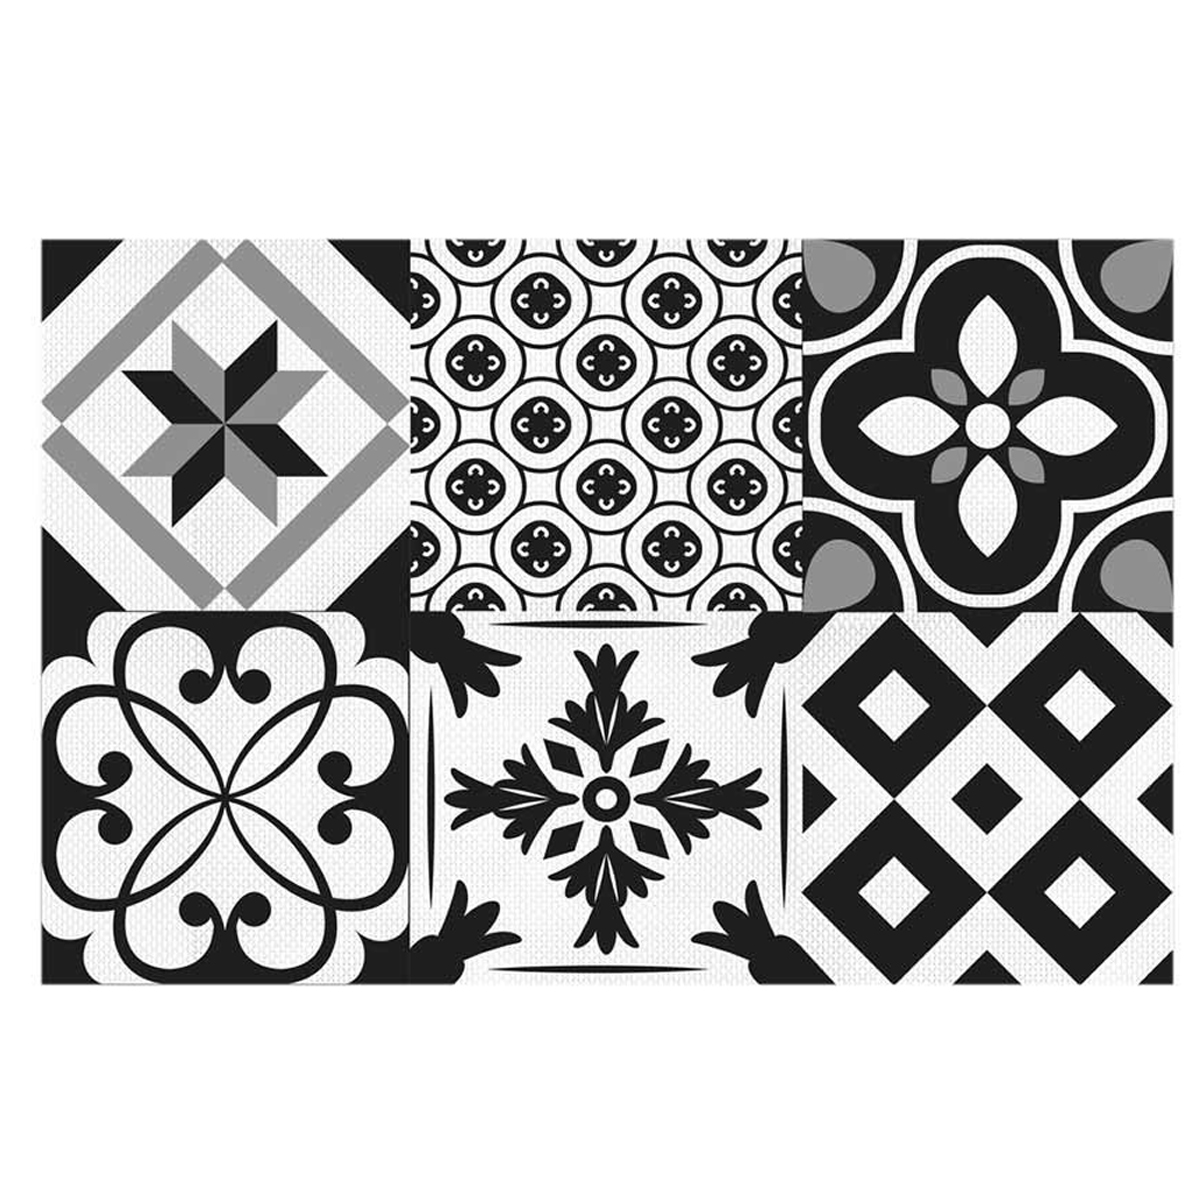 Set de table plastifié \'Boho\' noir blanc (carreaux) - 43x28 cm - [Q5592]